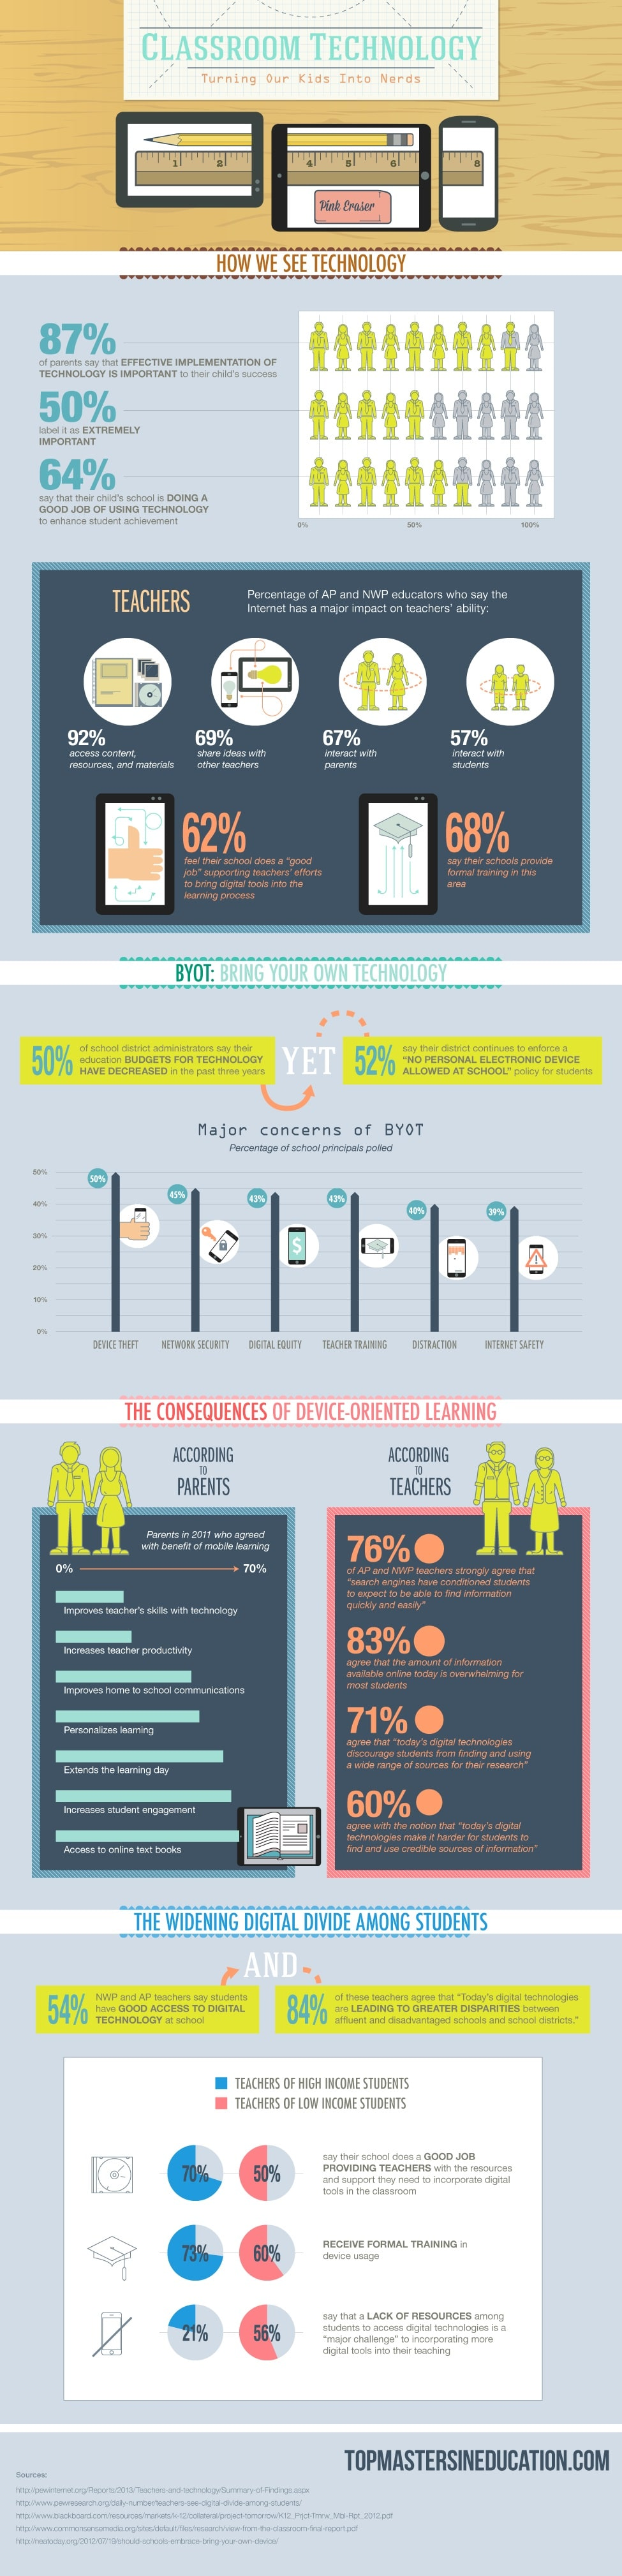 classroom-technologies-statistics-overview-infographic